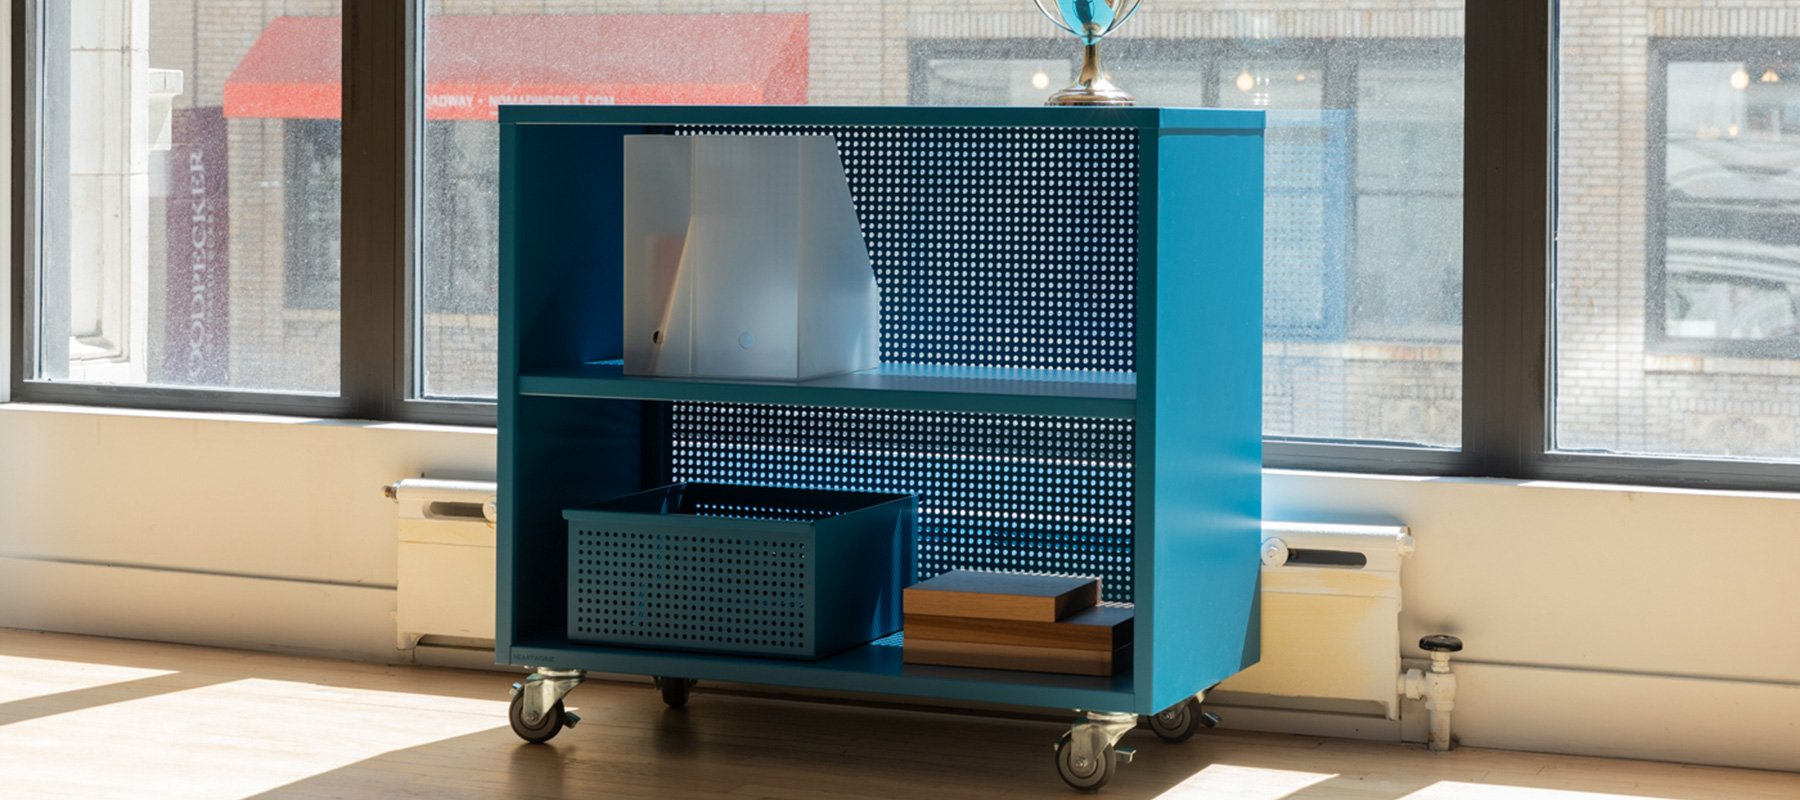 Heartwork Active Duty bookcase in true blue in office setting